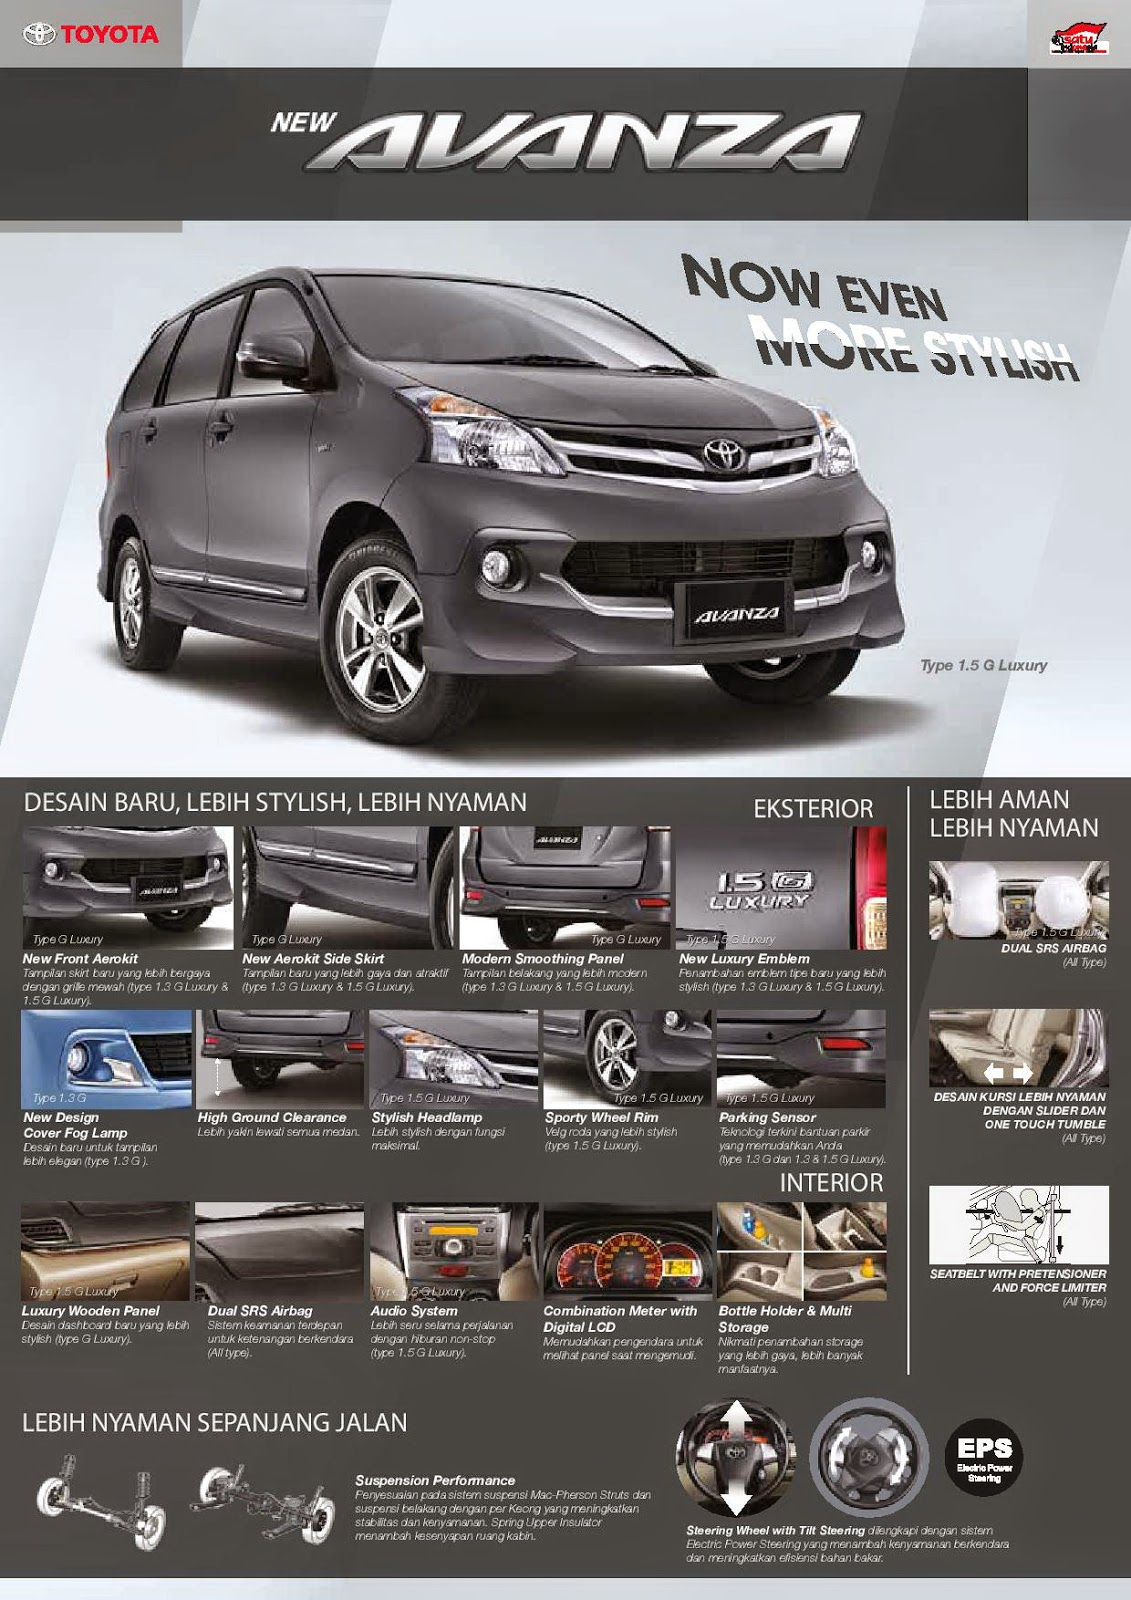 grand new avanza g luxury corolla altis review team bhp kijang innova 2014 html autos weblog